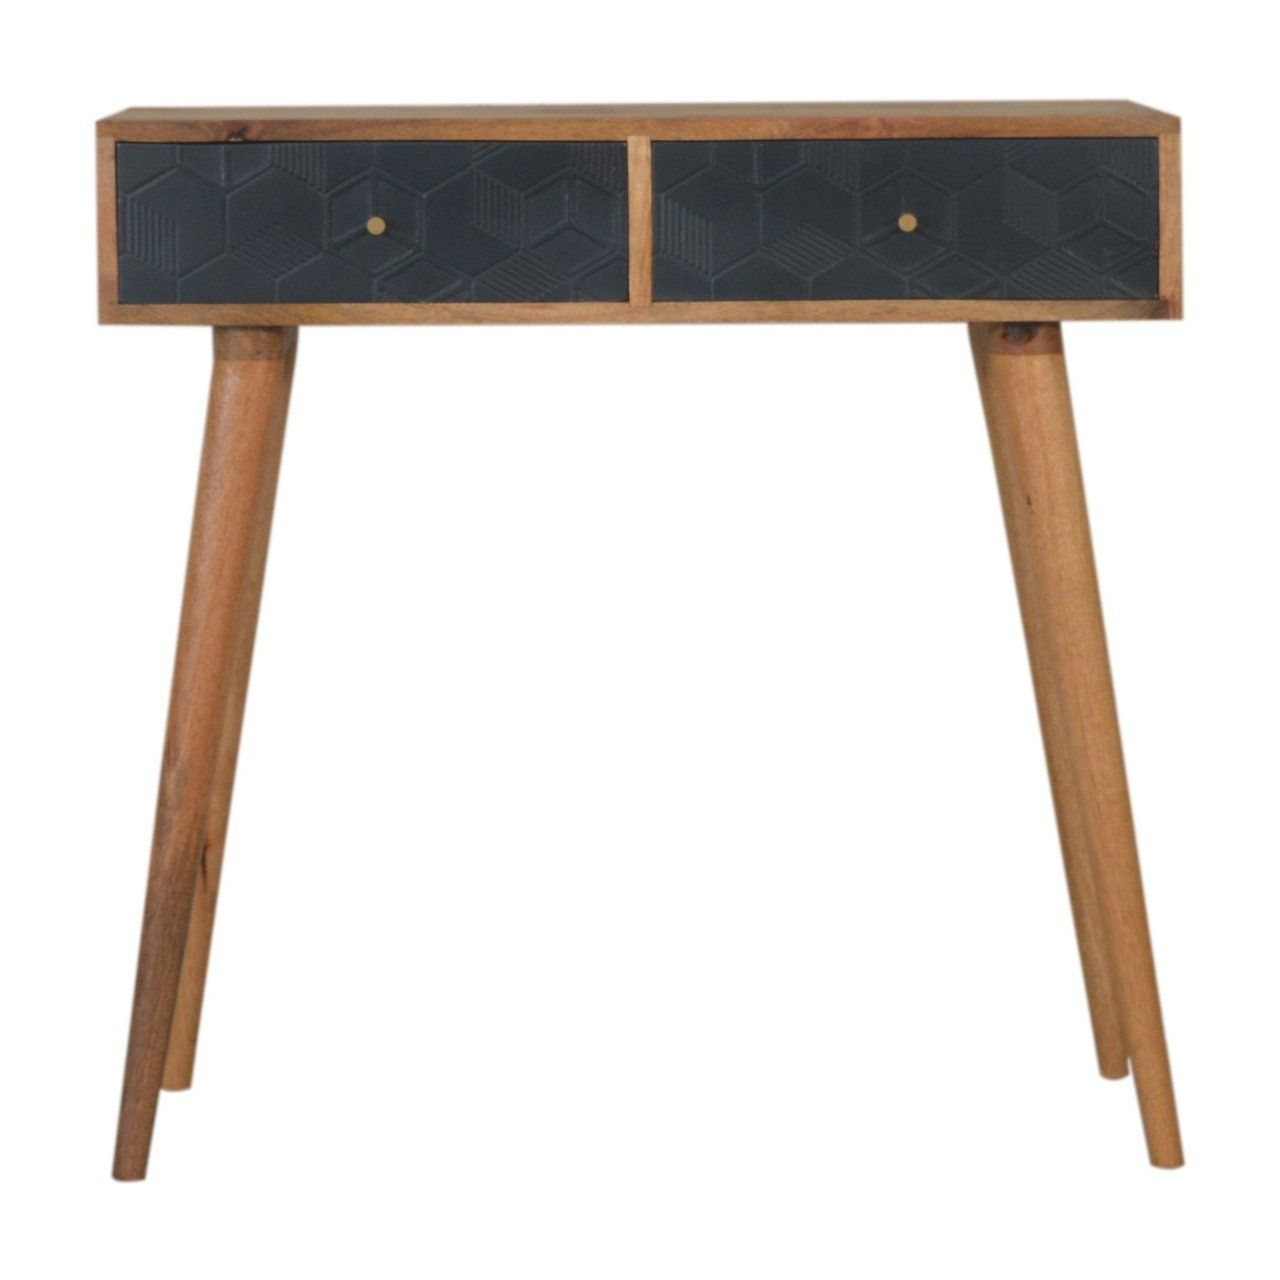 Photo of Acadia Black Console Table